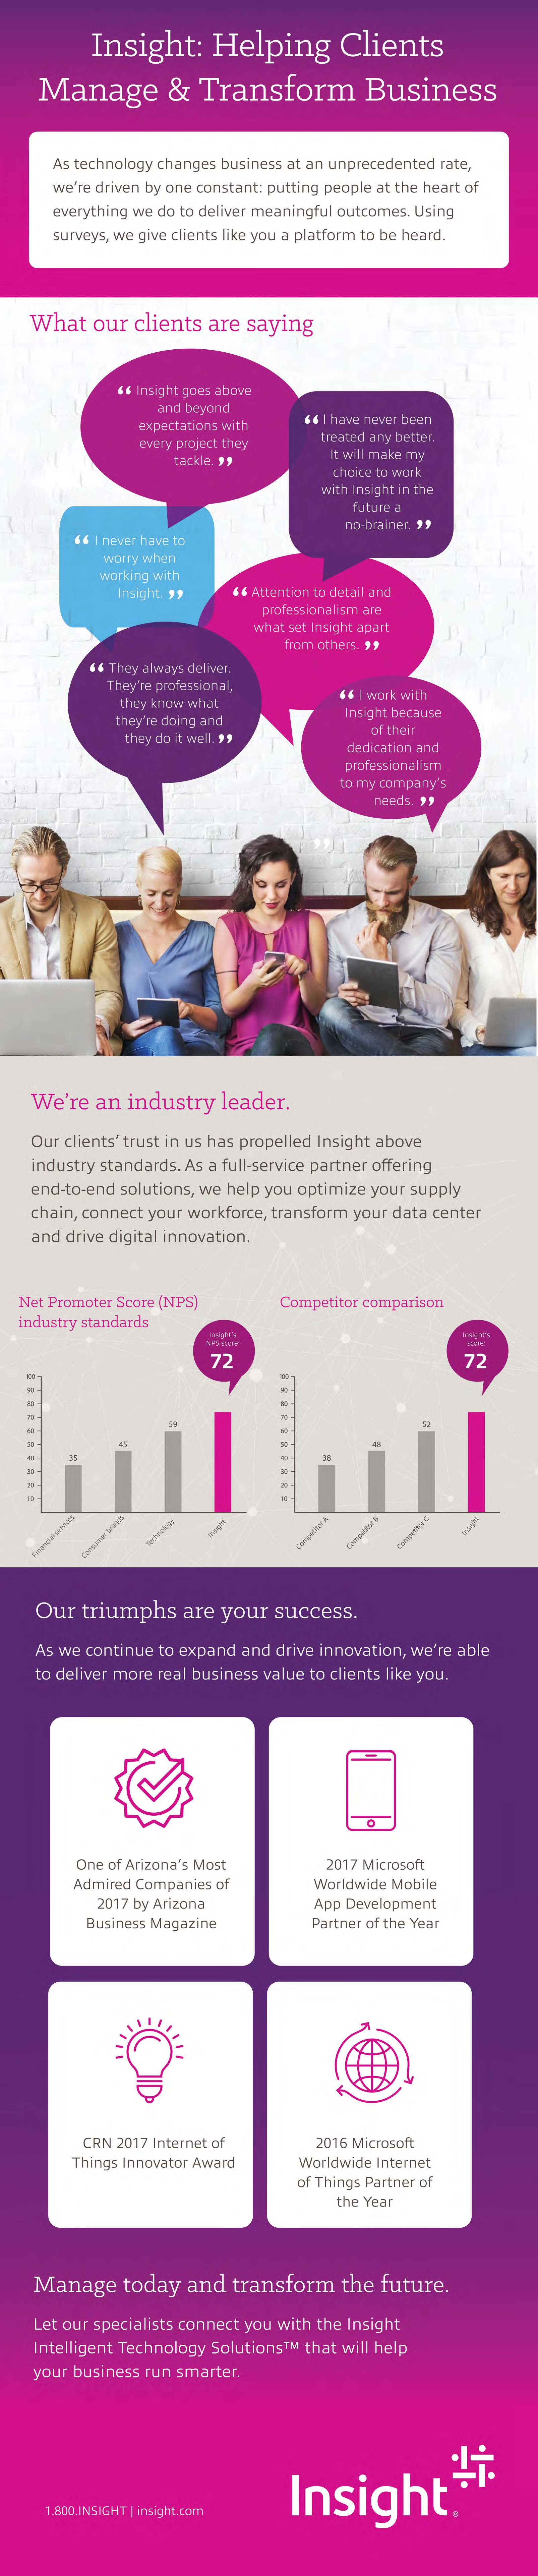 The Insight Difference infographic